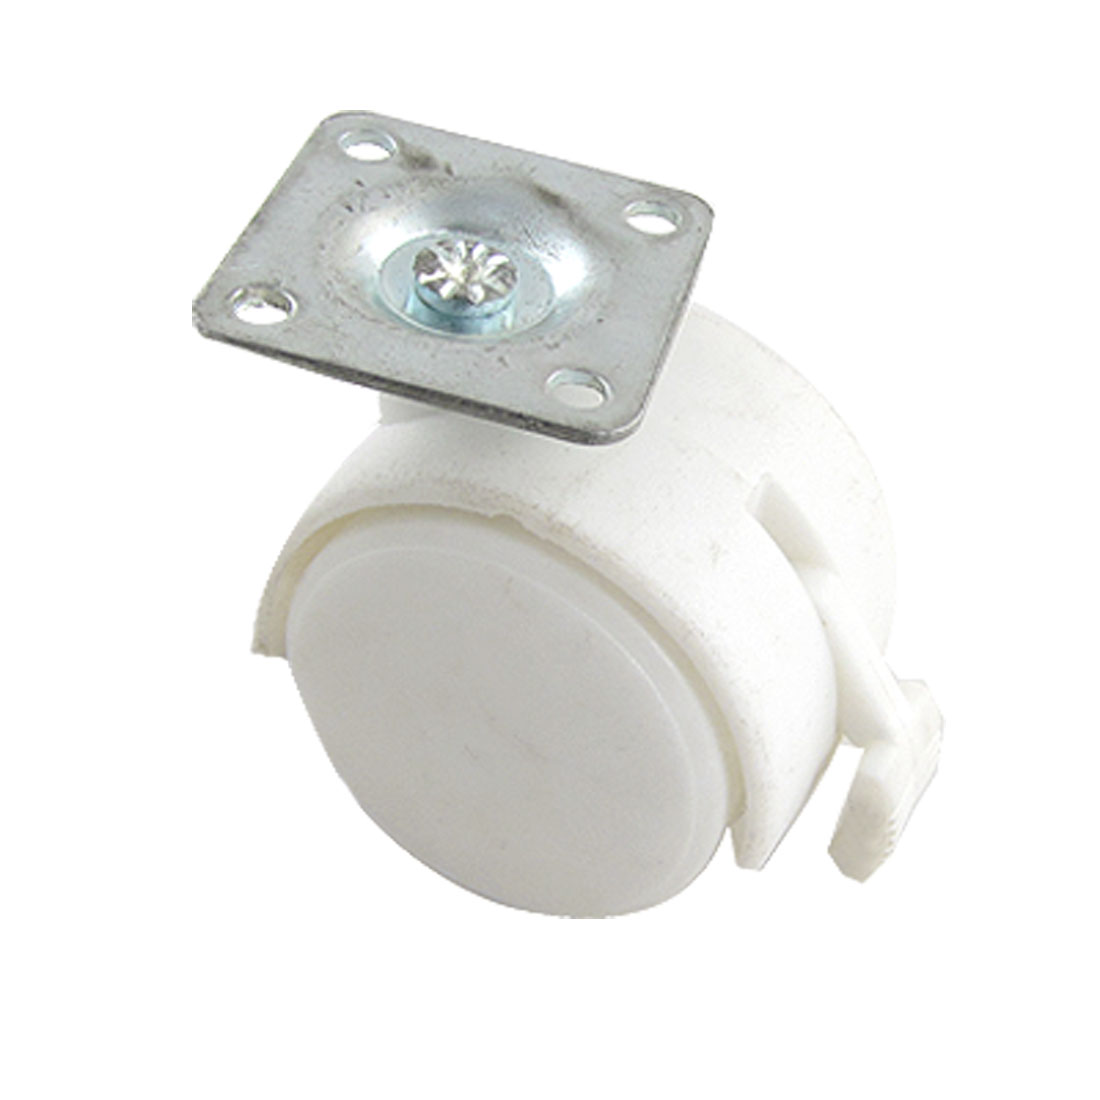 "Chair Trolley Plate Connector Lock Swivel 1.5"" Caster White"